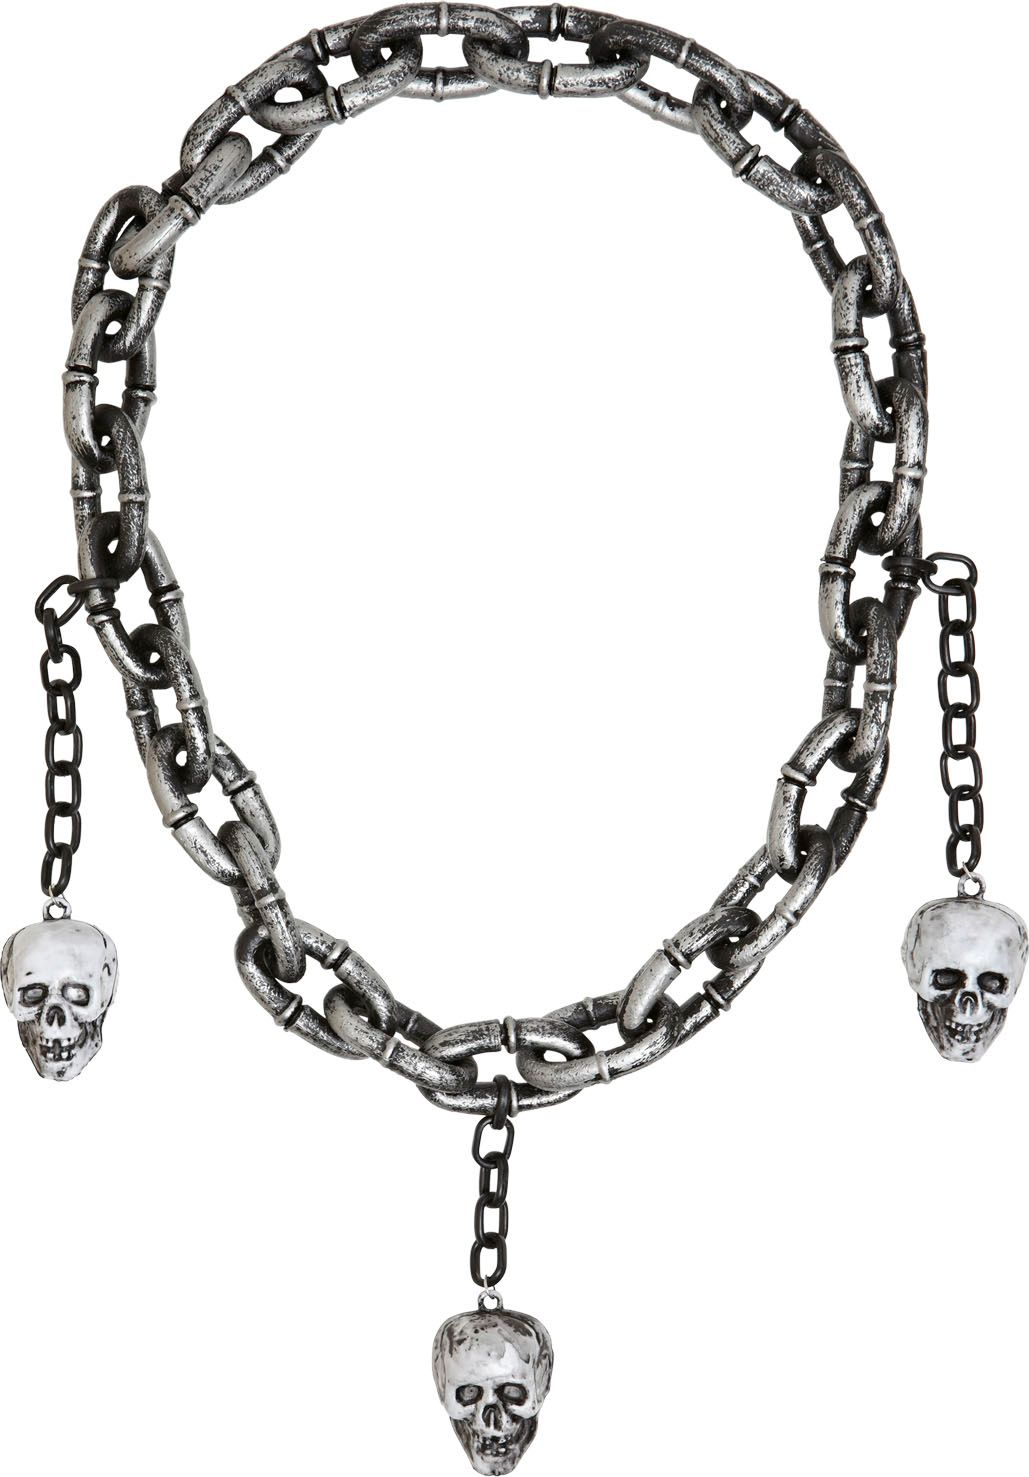 Schedels ketting